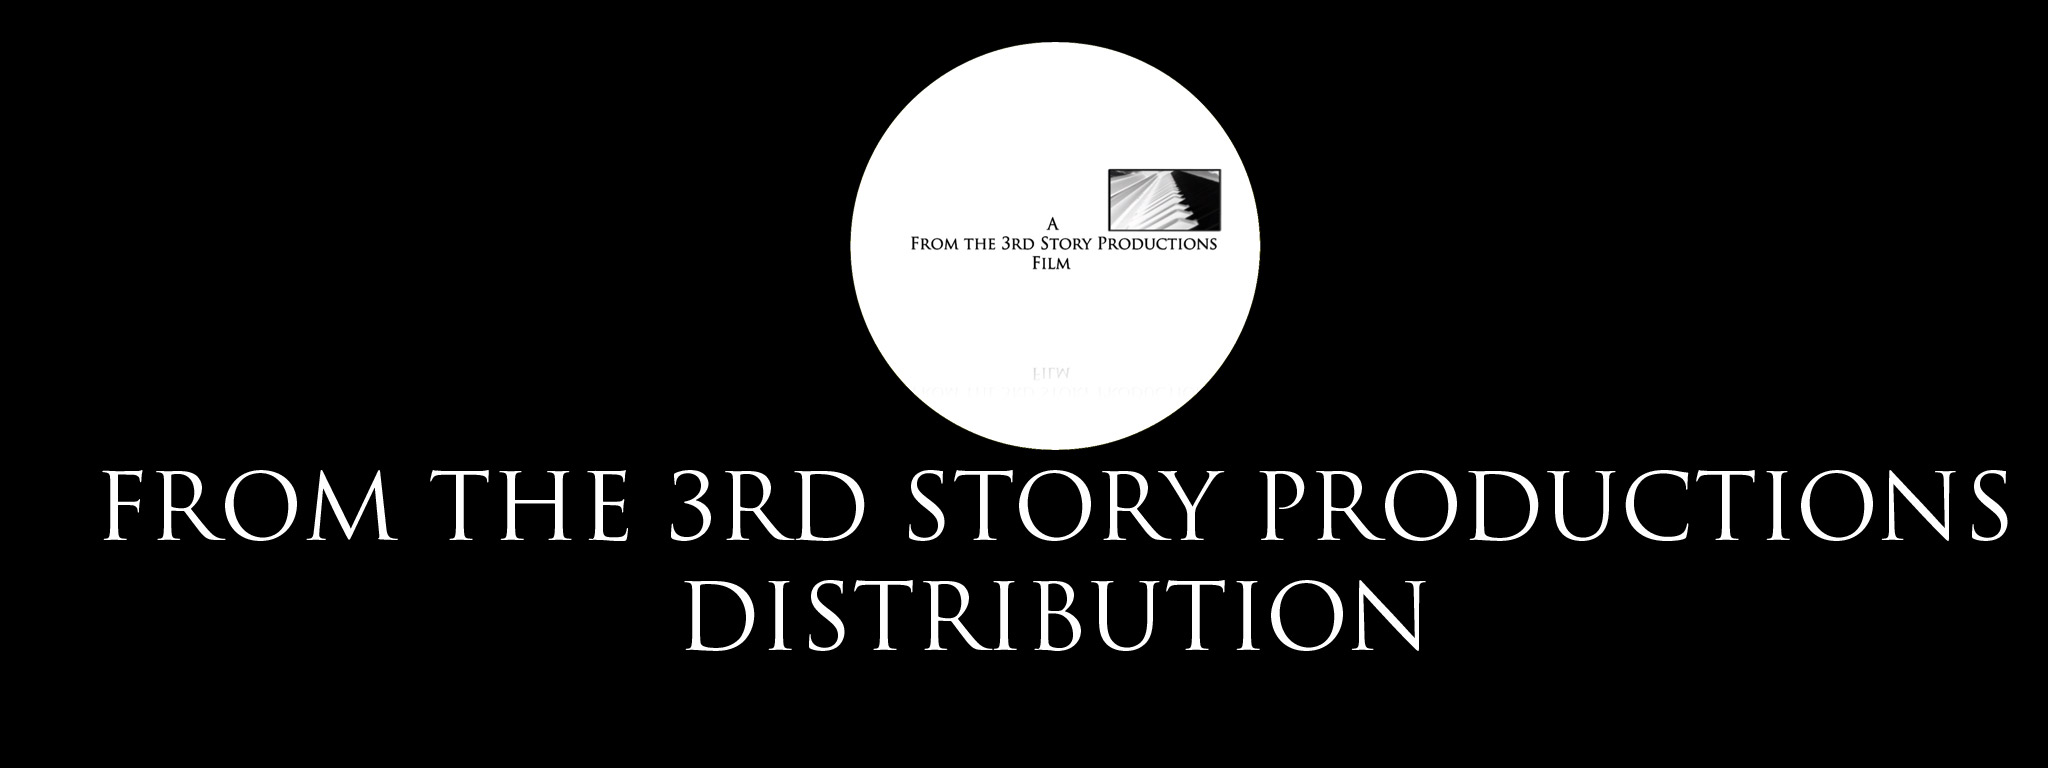 FT3SD 16 6 - Welcome to From the 3rd Story Productions Ltd </br> Film Production, Post-Production and Distribution